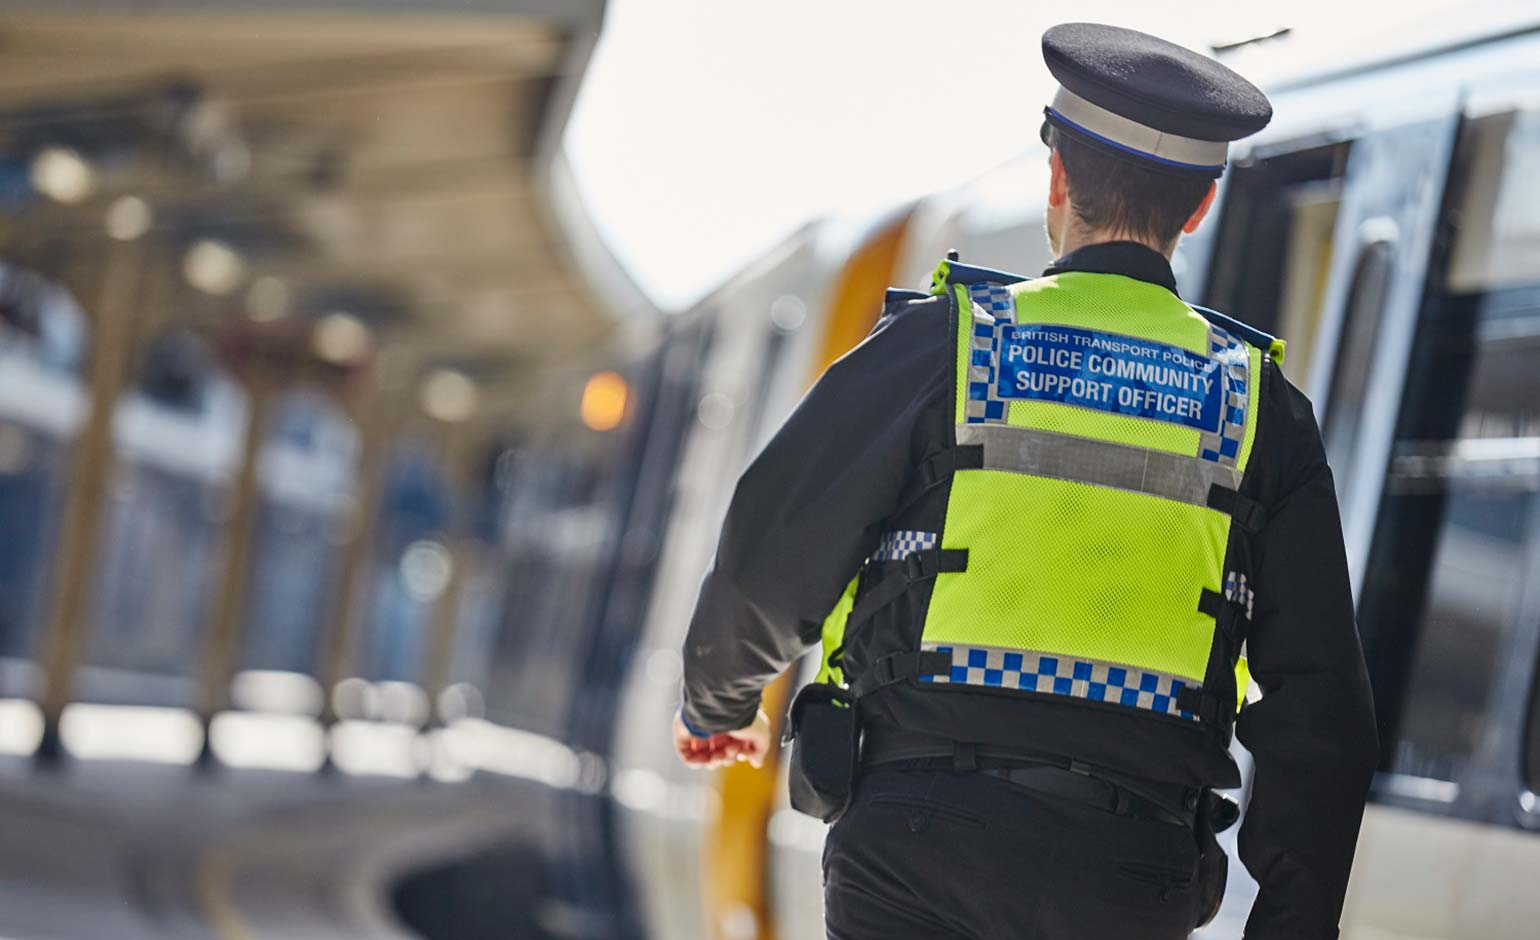 Witnesses sought after sexual assault on train between Swindon and Bath